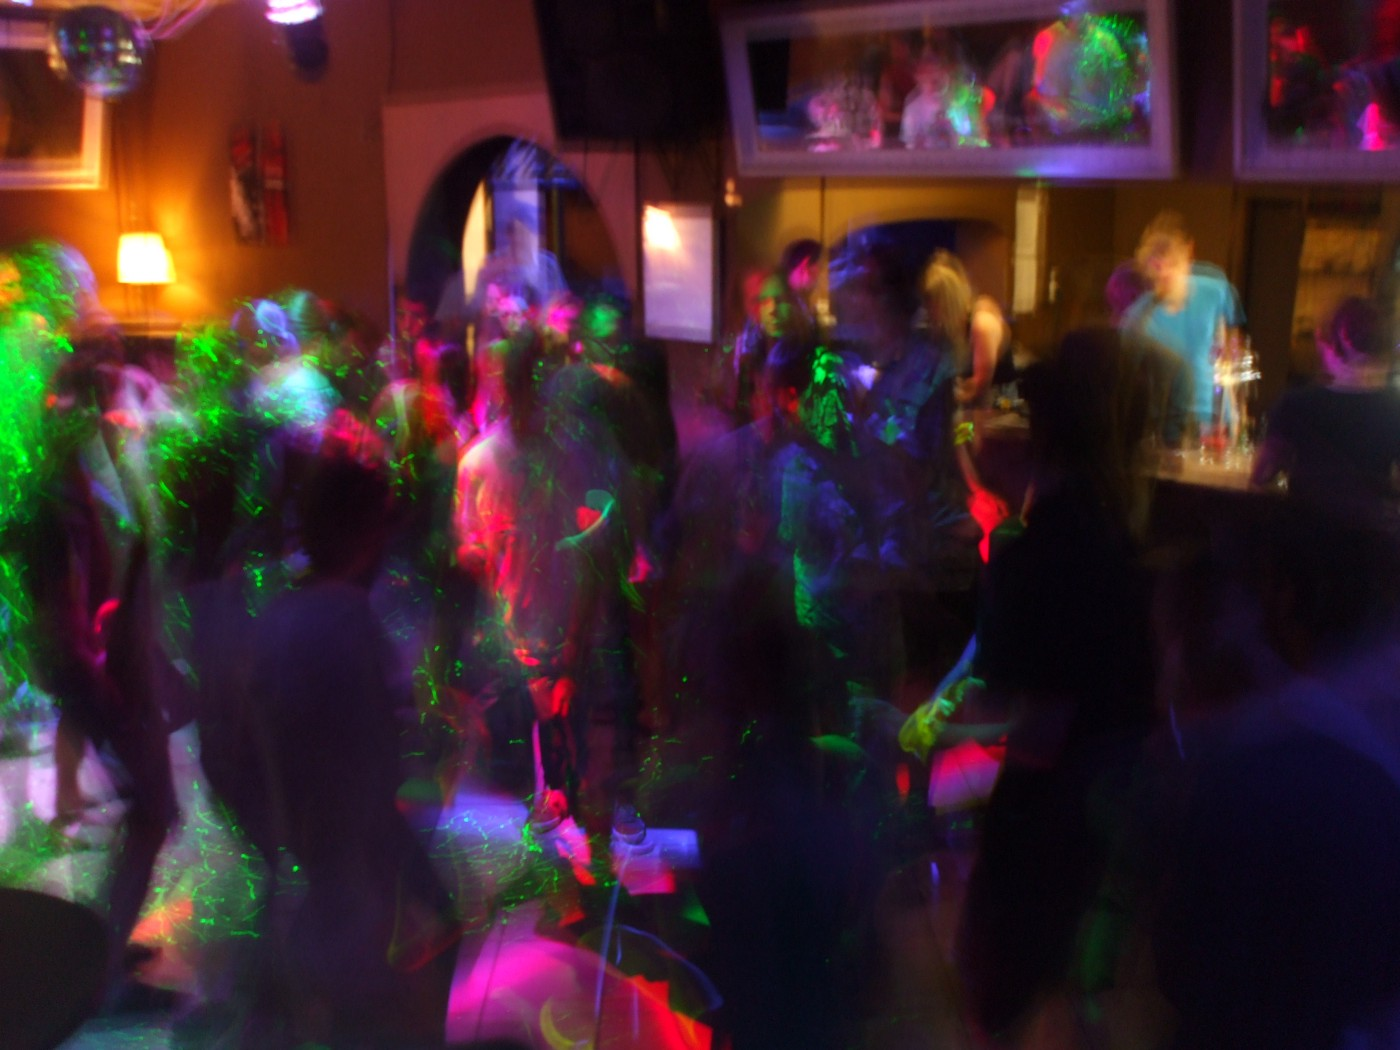 Dancing and drinking people in club at night